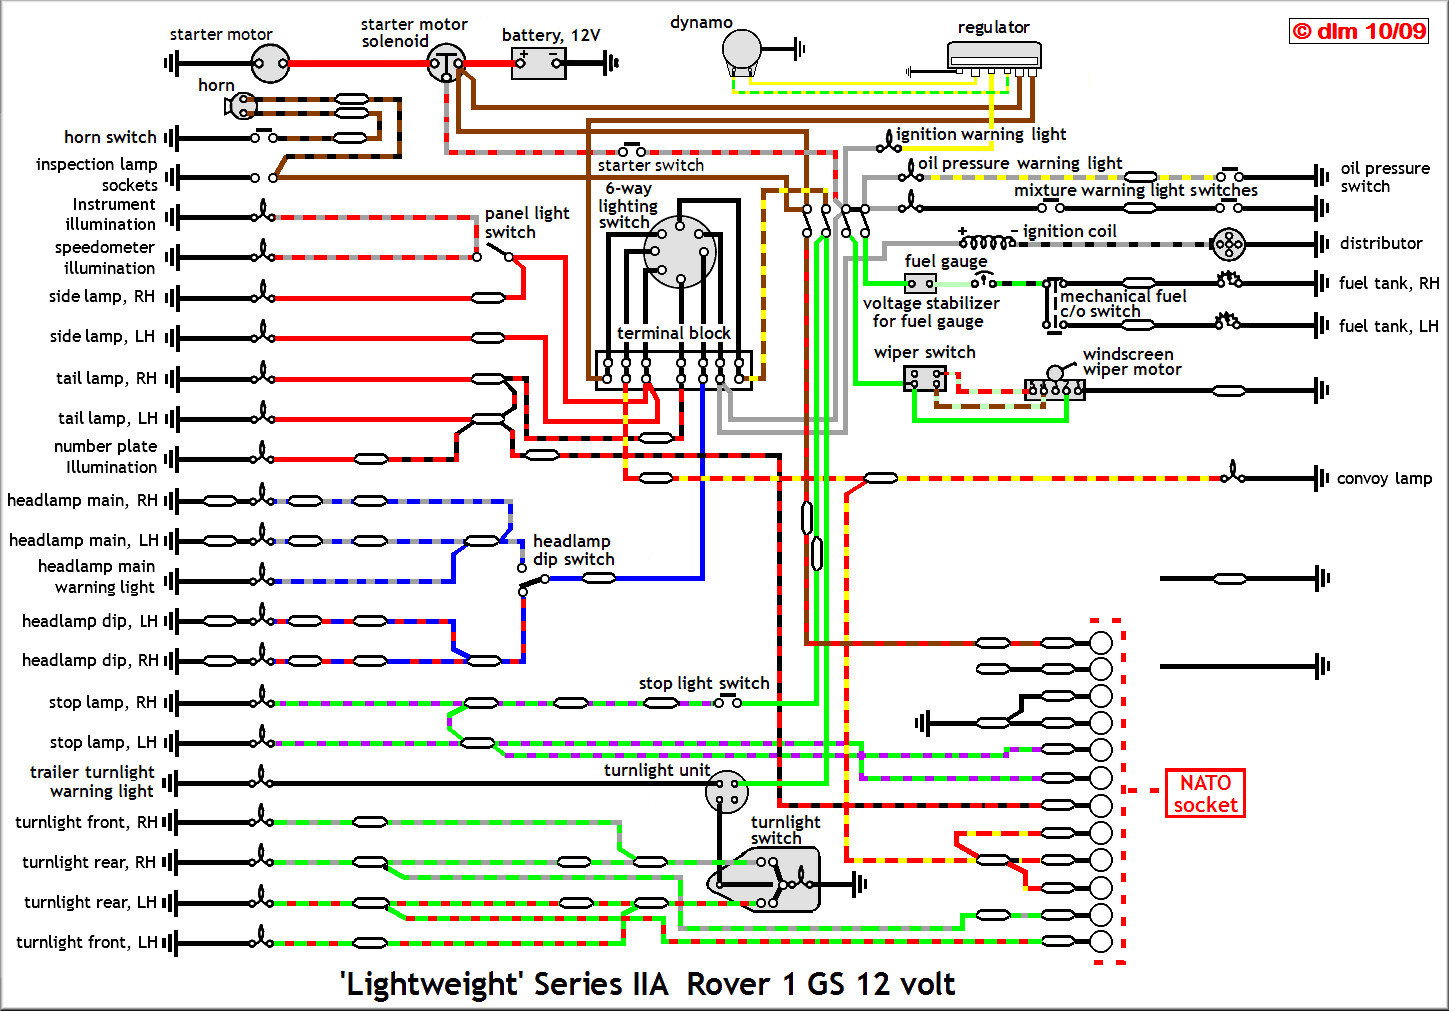 Rover 1 Diagram land rover lightweight land rover series 3 wiring diagram pdf at bakdesigns.co